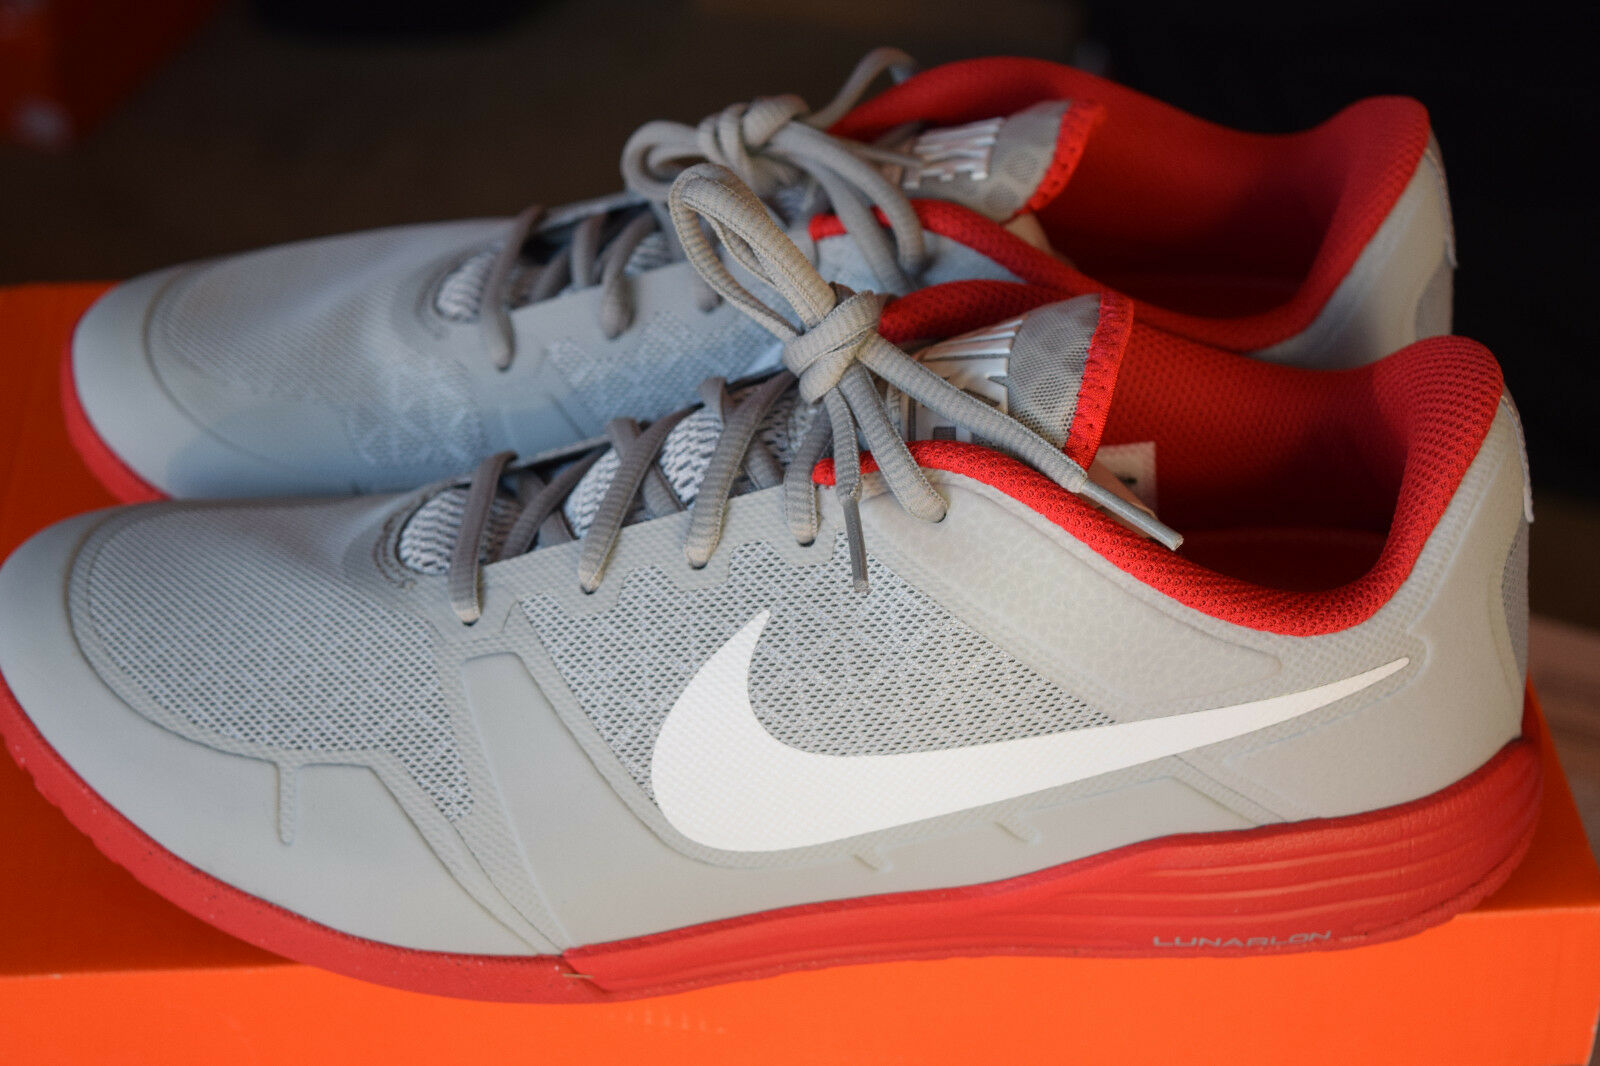 New In Box Nike Lunar Ultimate TR Mens Premium shoes Sz 11 Wolf Grey, Red, White